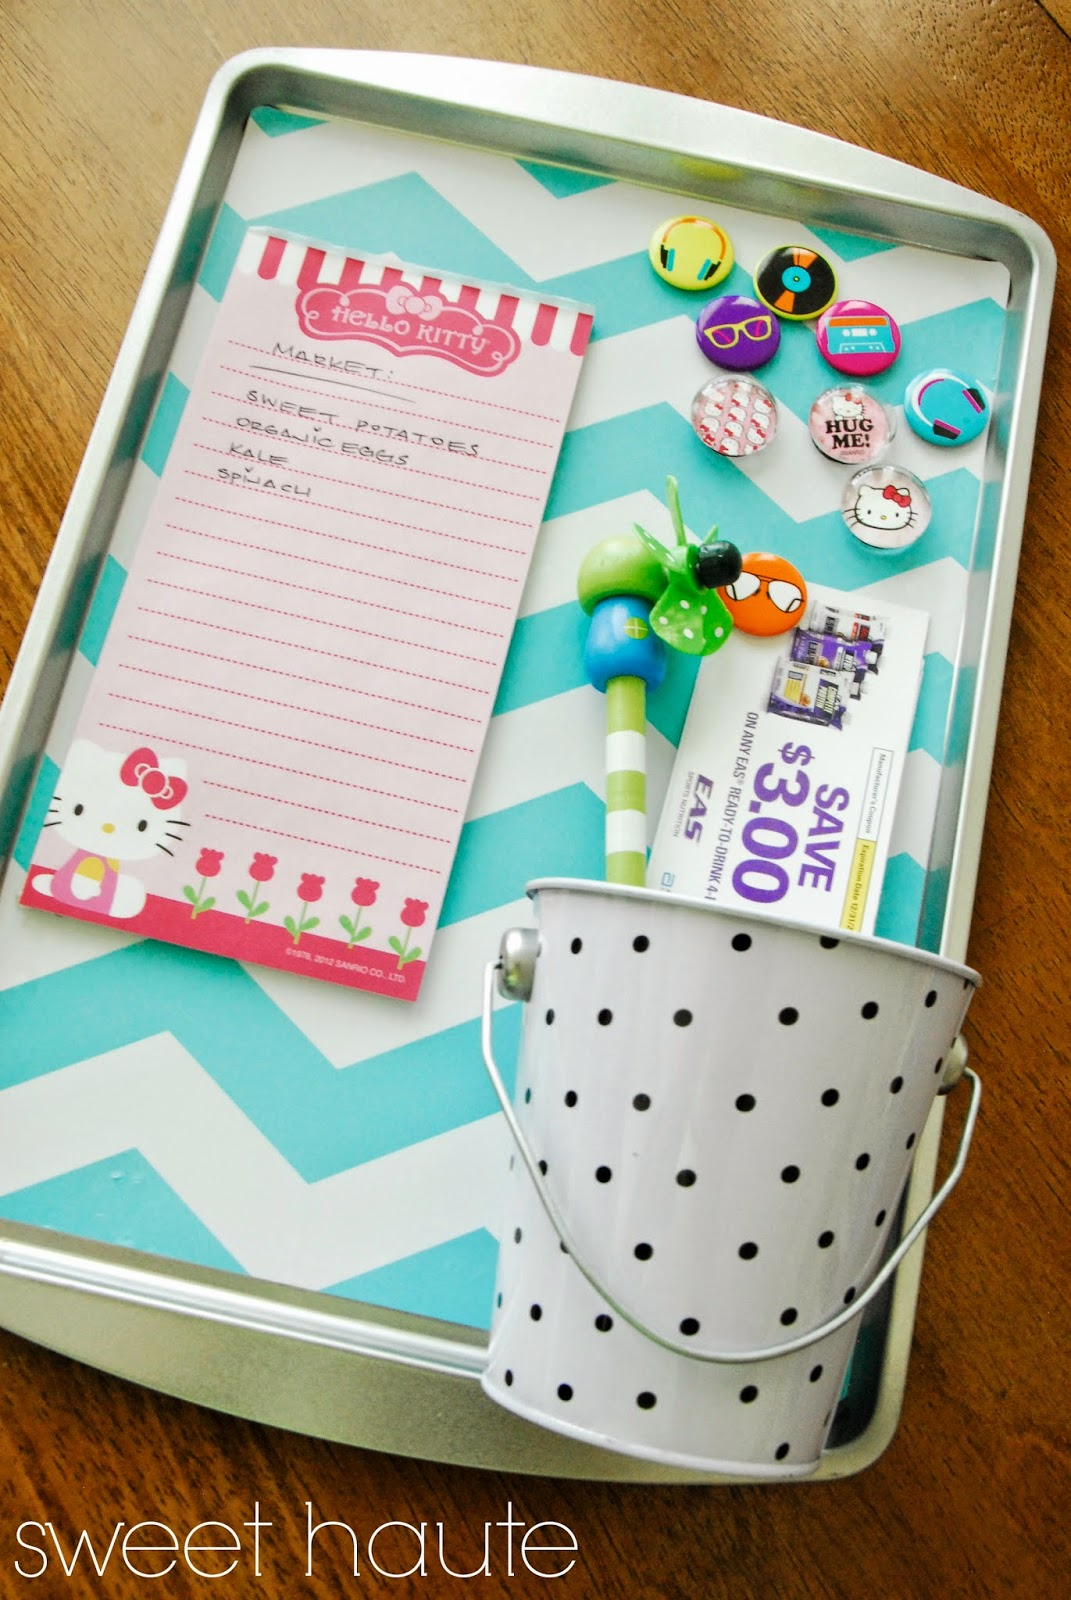 organizing, magnetic board, chevron, homemade gift, cheap inexpensive